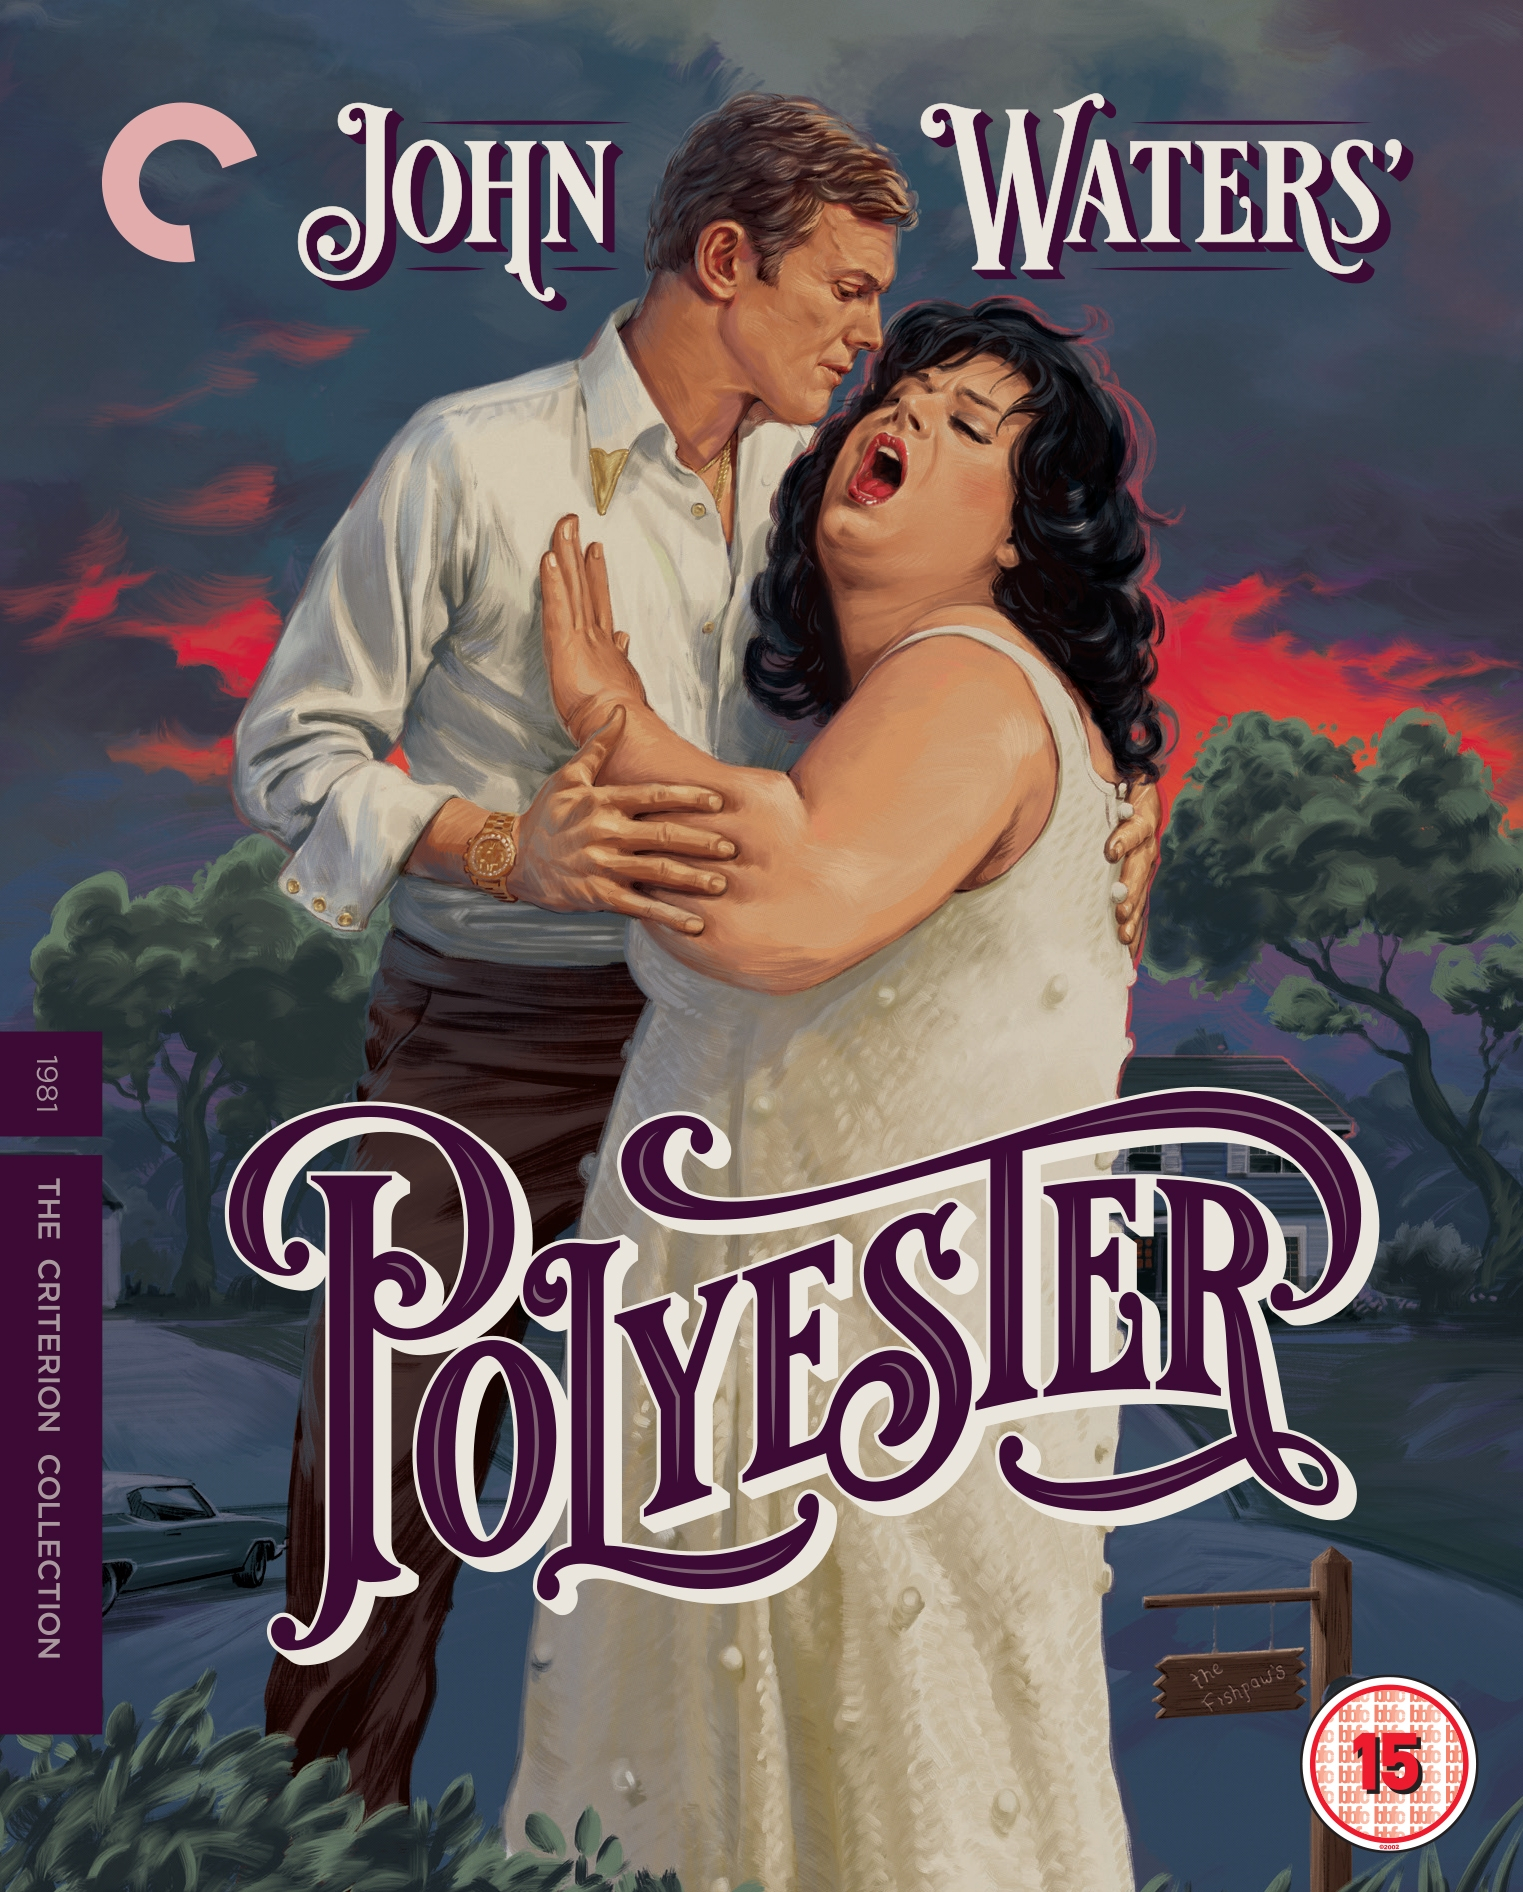 Buy Polyester (Blu-ray)